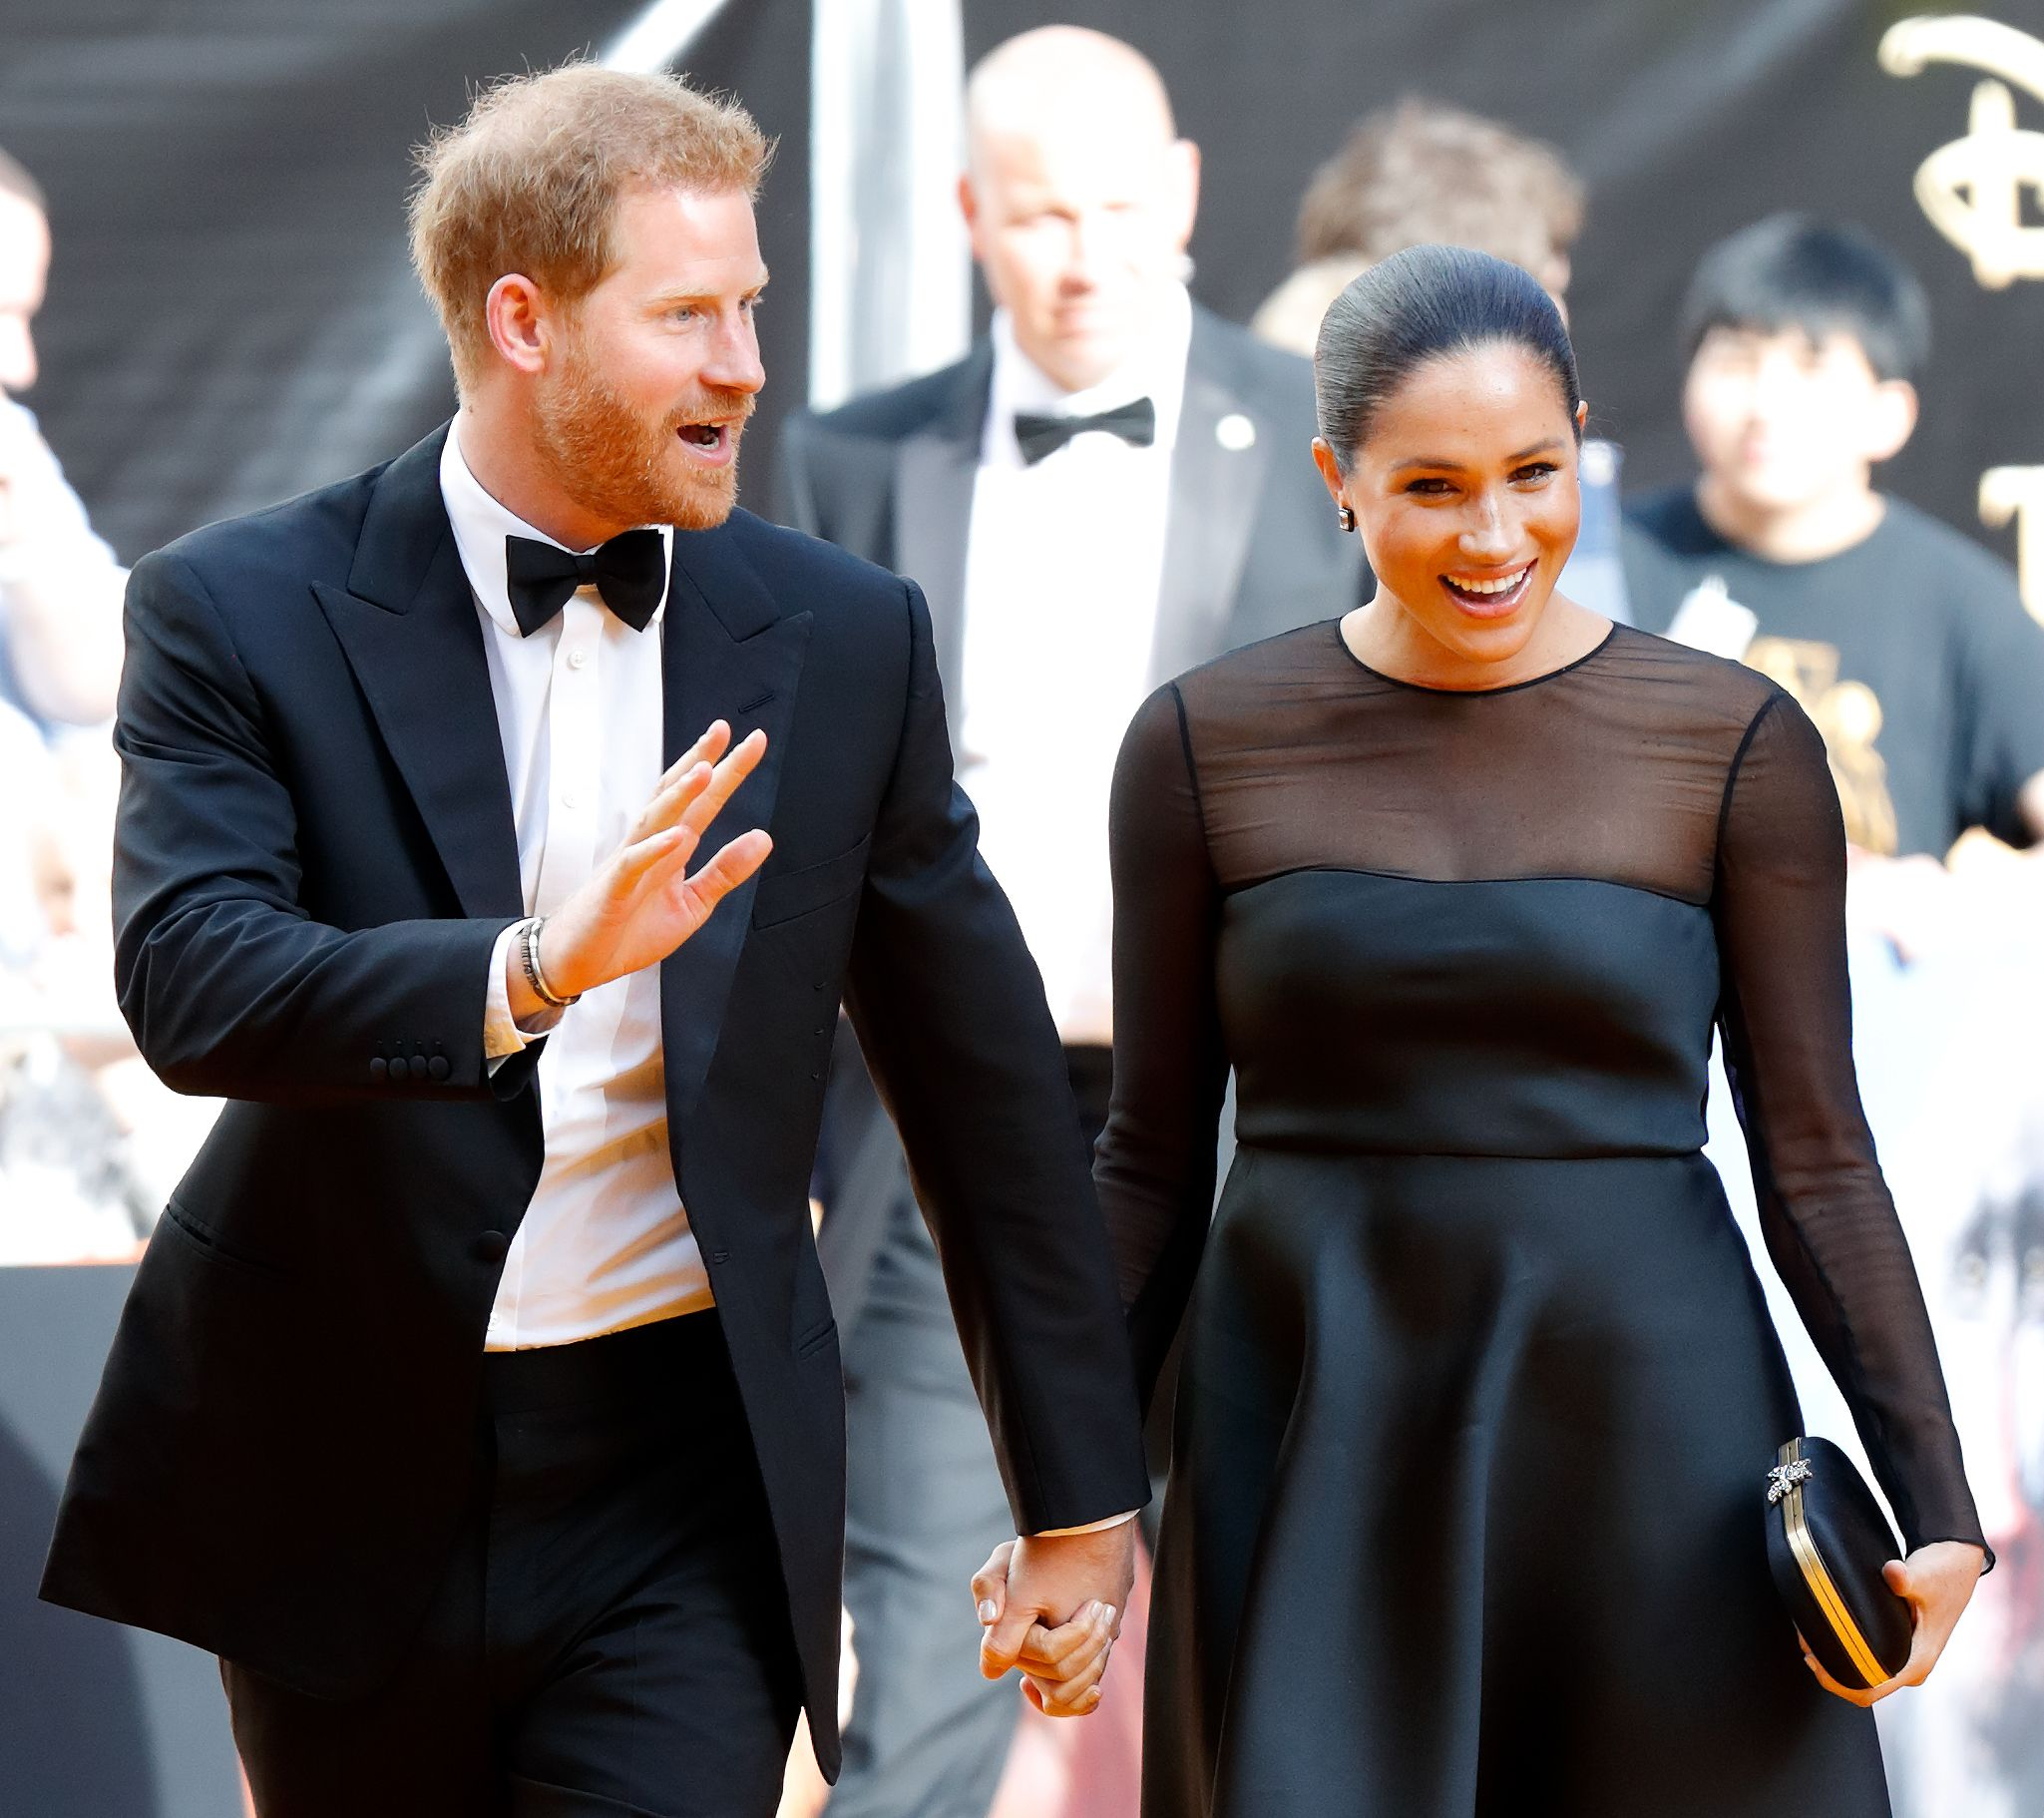 Prince Harry and Meghan Markle walking the red carpet at a movie premiere